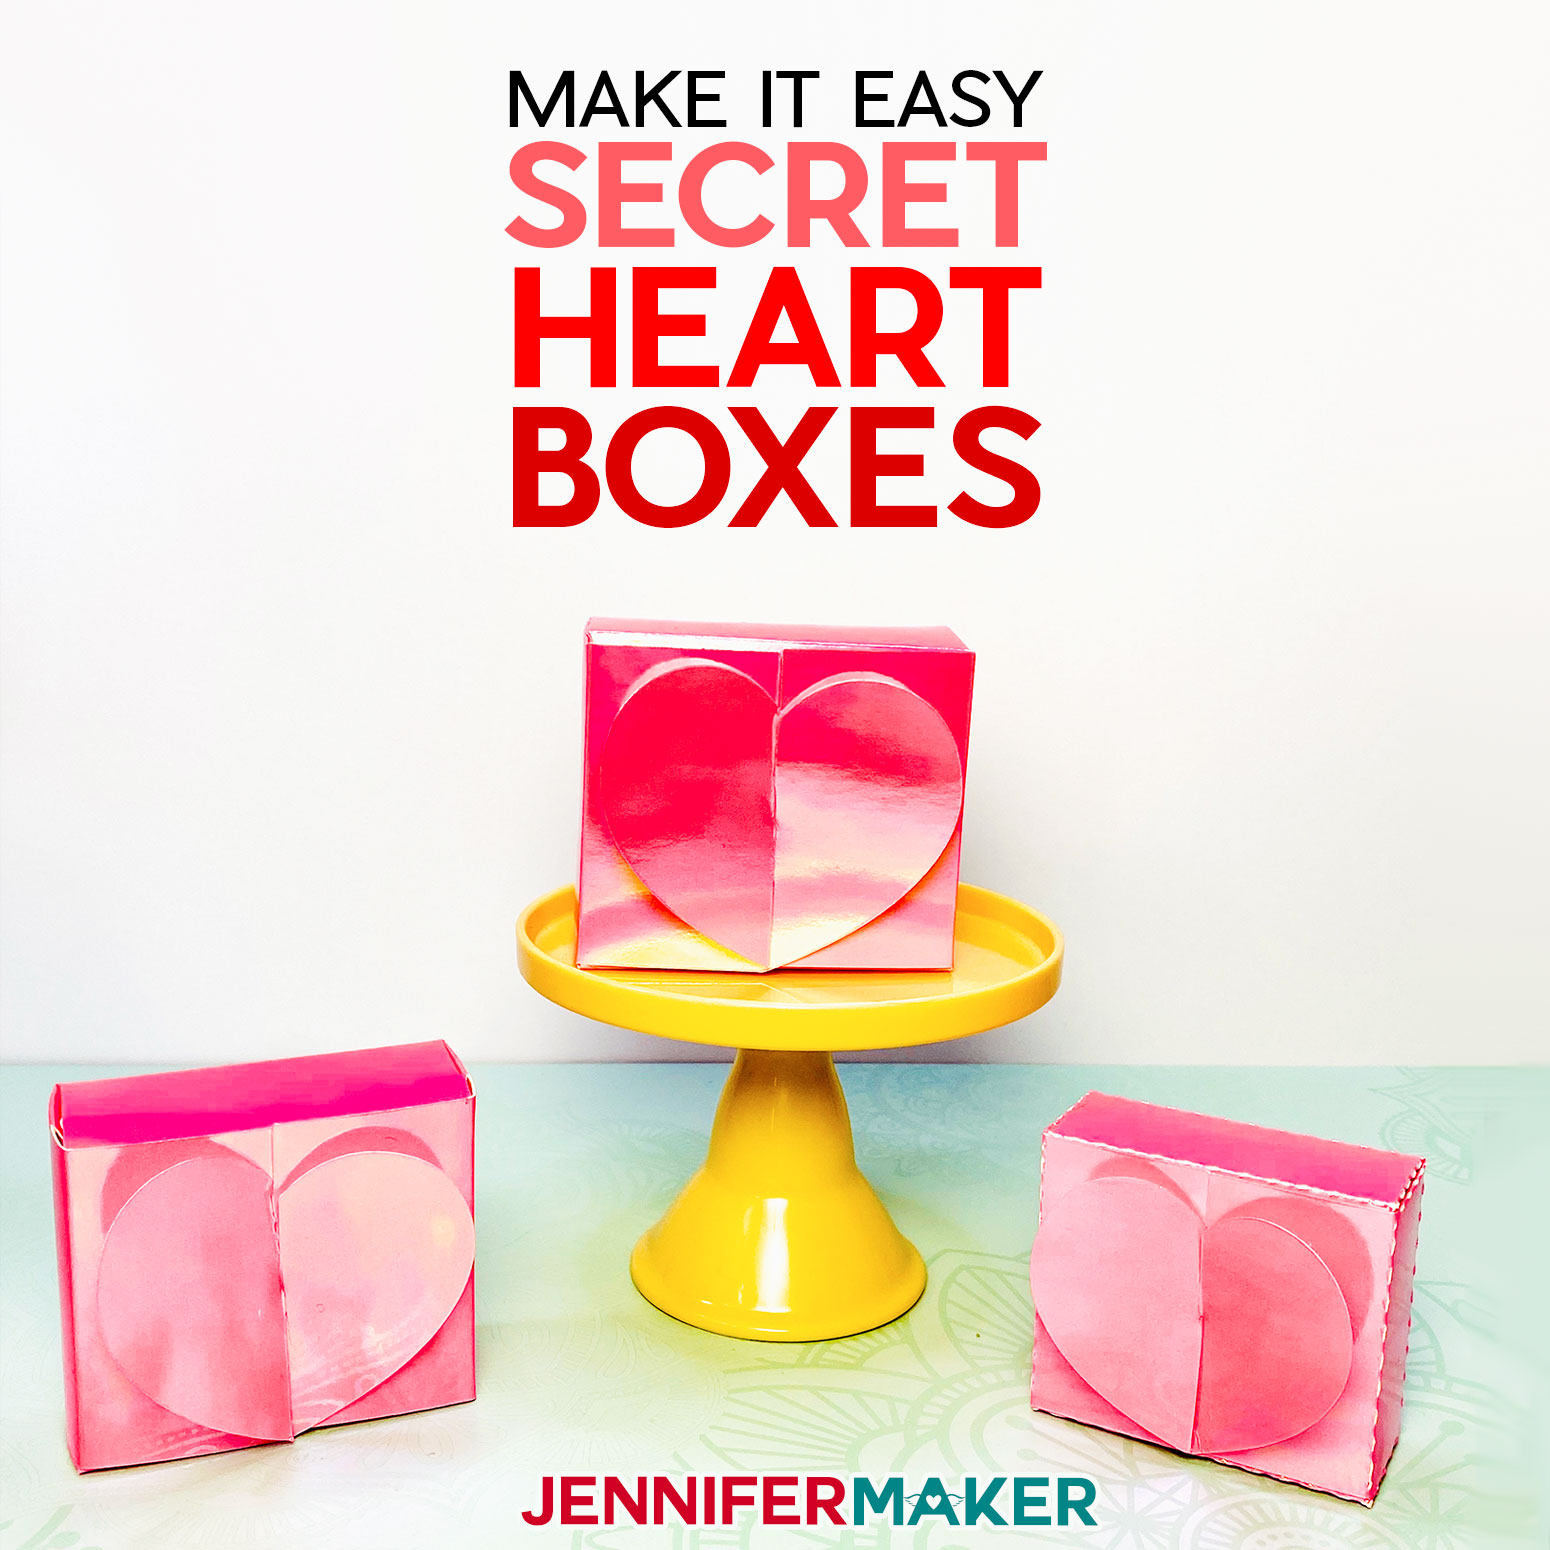 Easy Heart Boxes with Secret Hearts Inside - Free Pattern and Tutorial, cut by hand or on a Cricut cutting machine